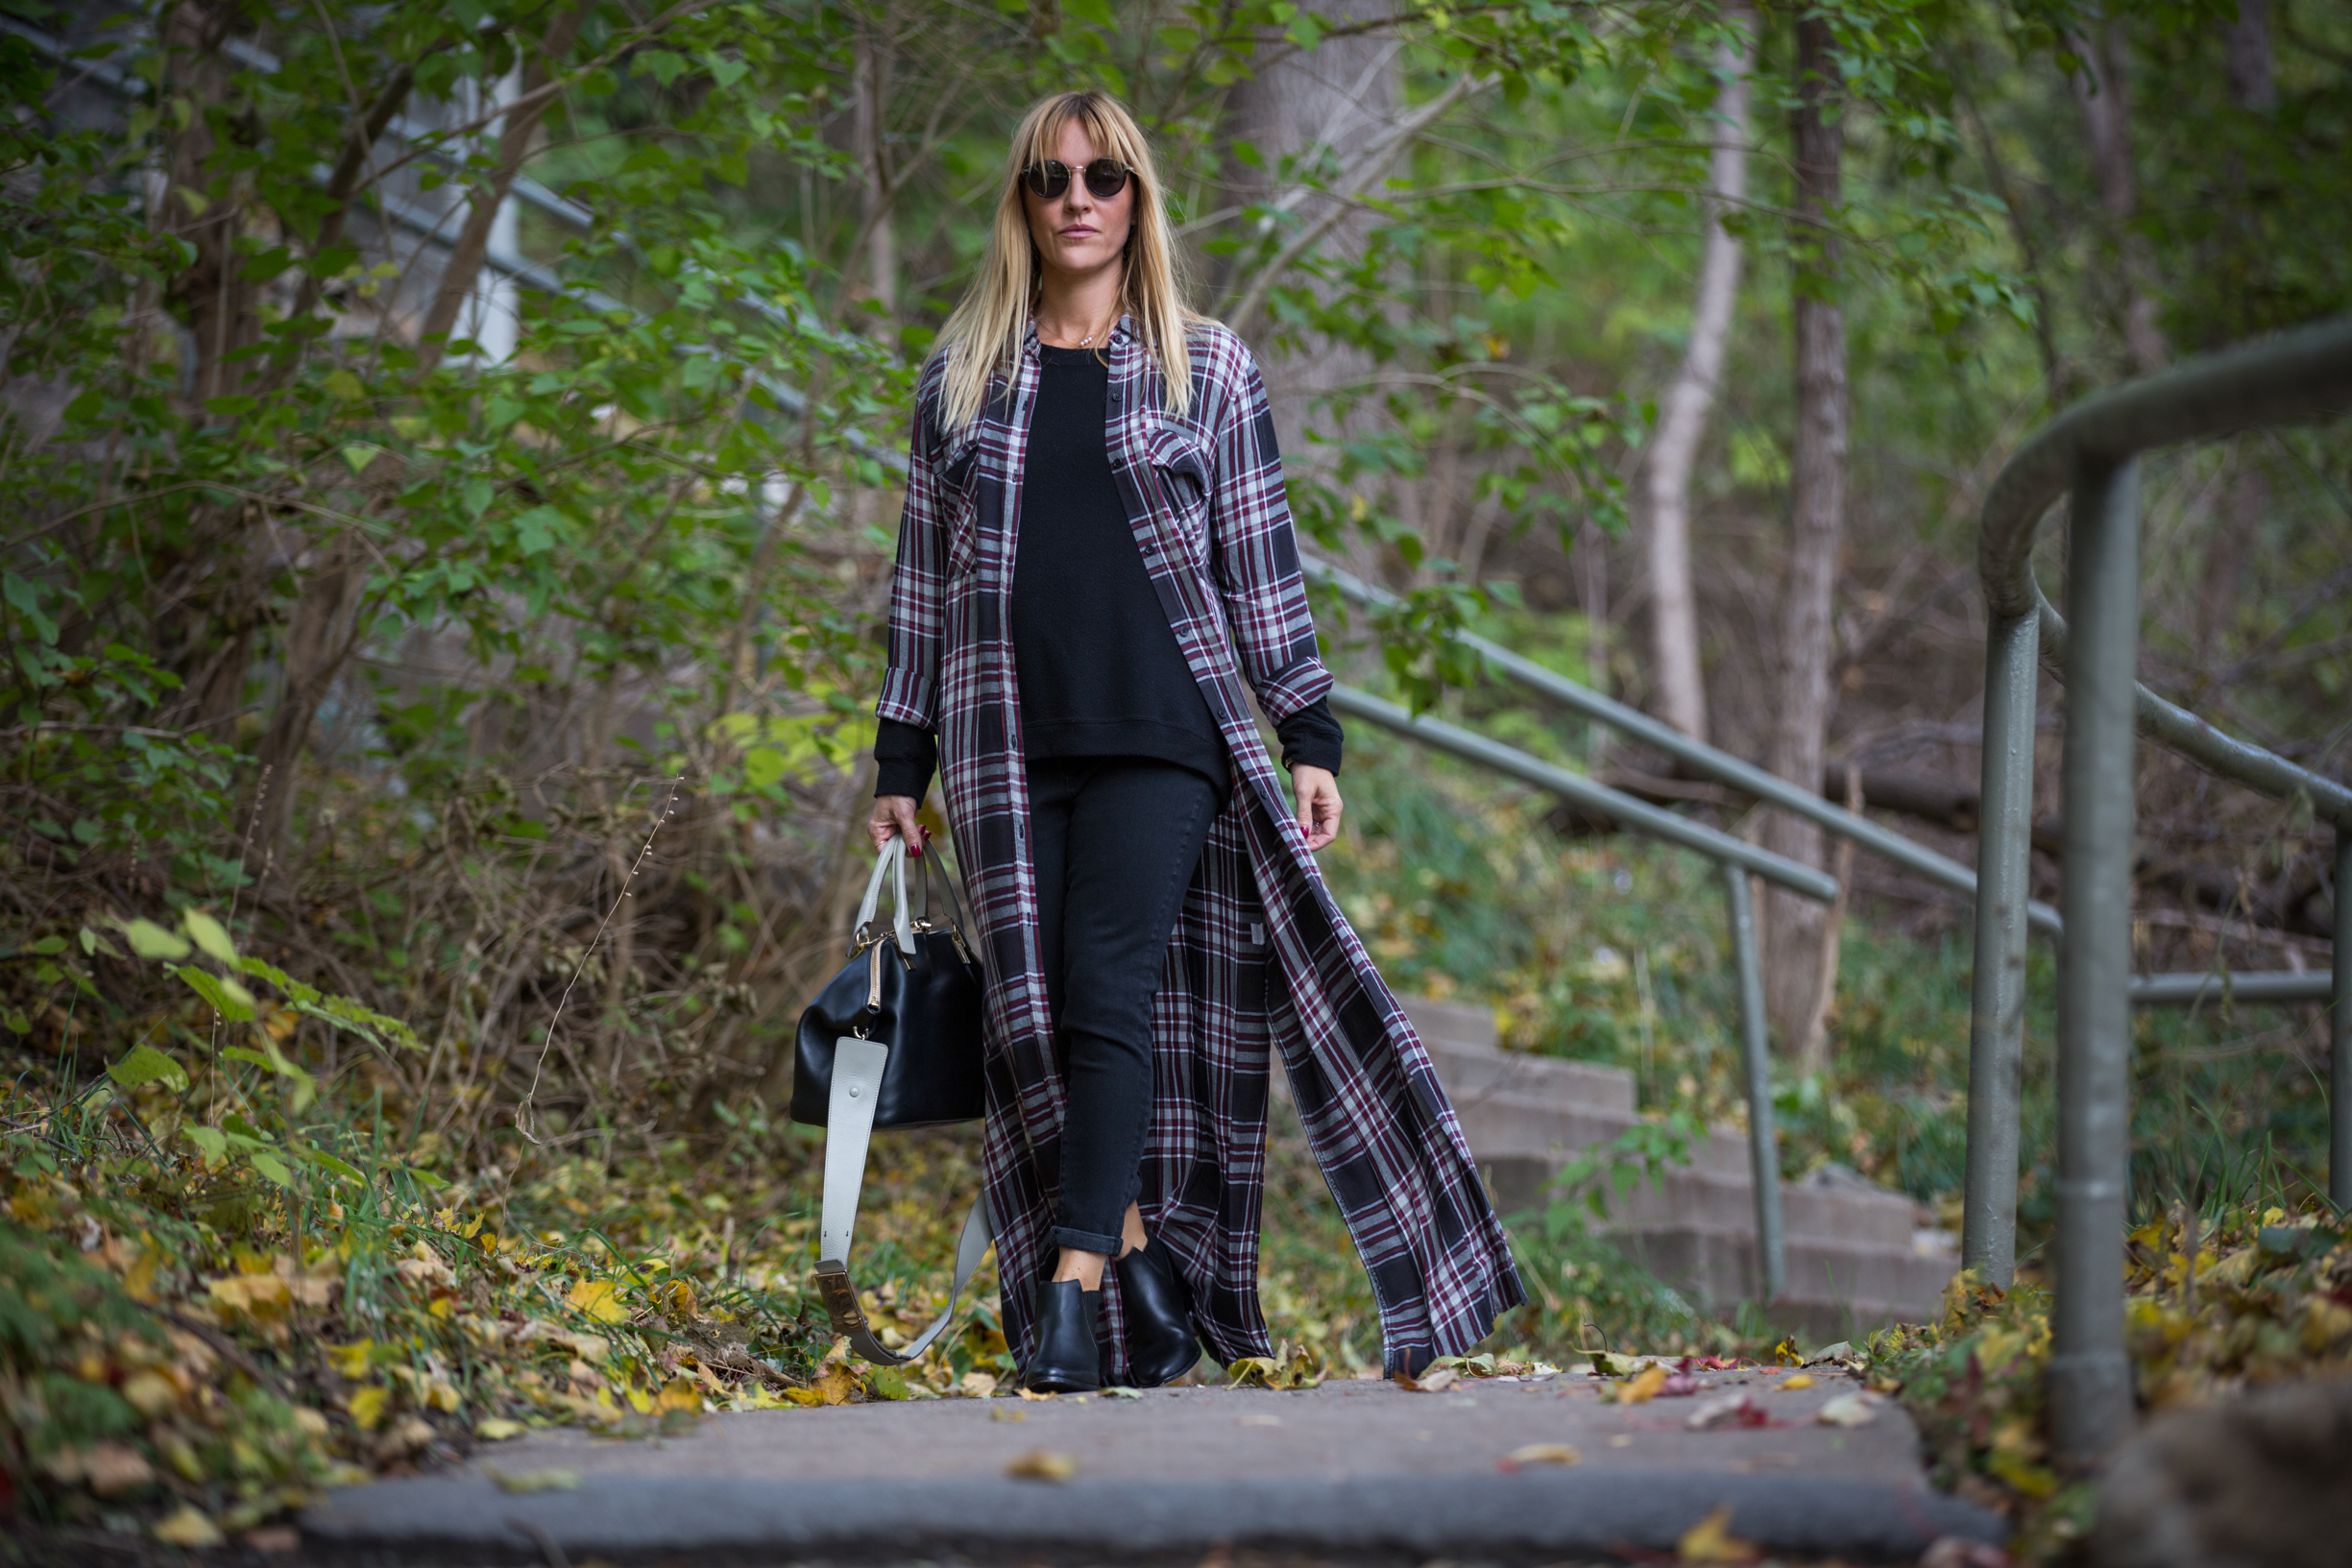 Cartel footwear ankle boots from ponyride distribution on Mademoiselle Jules Canadian fashion blogger